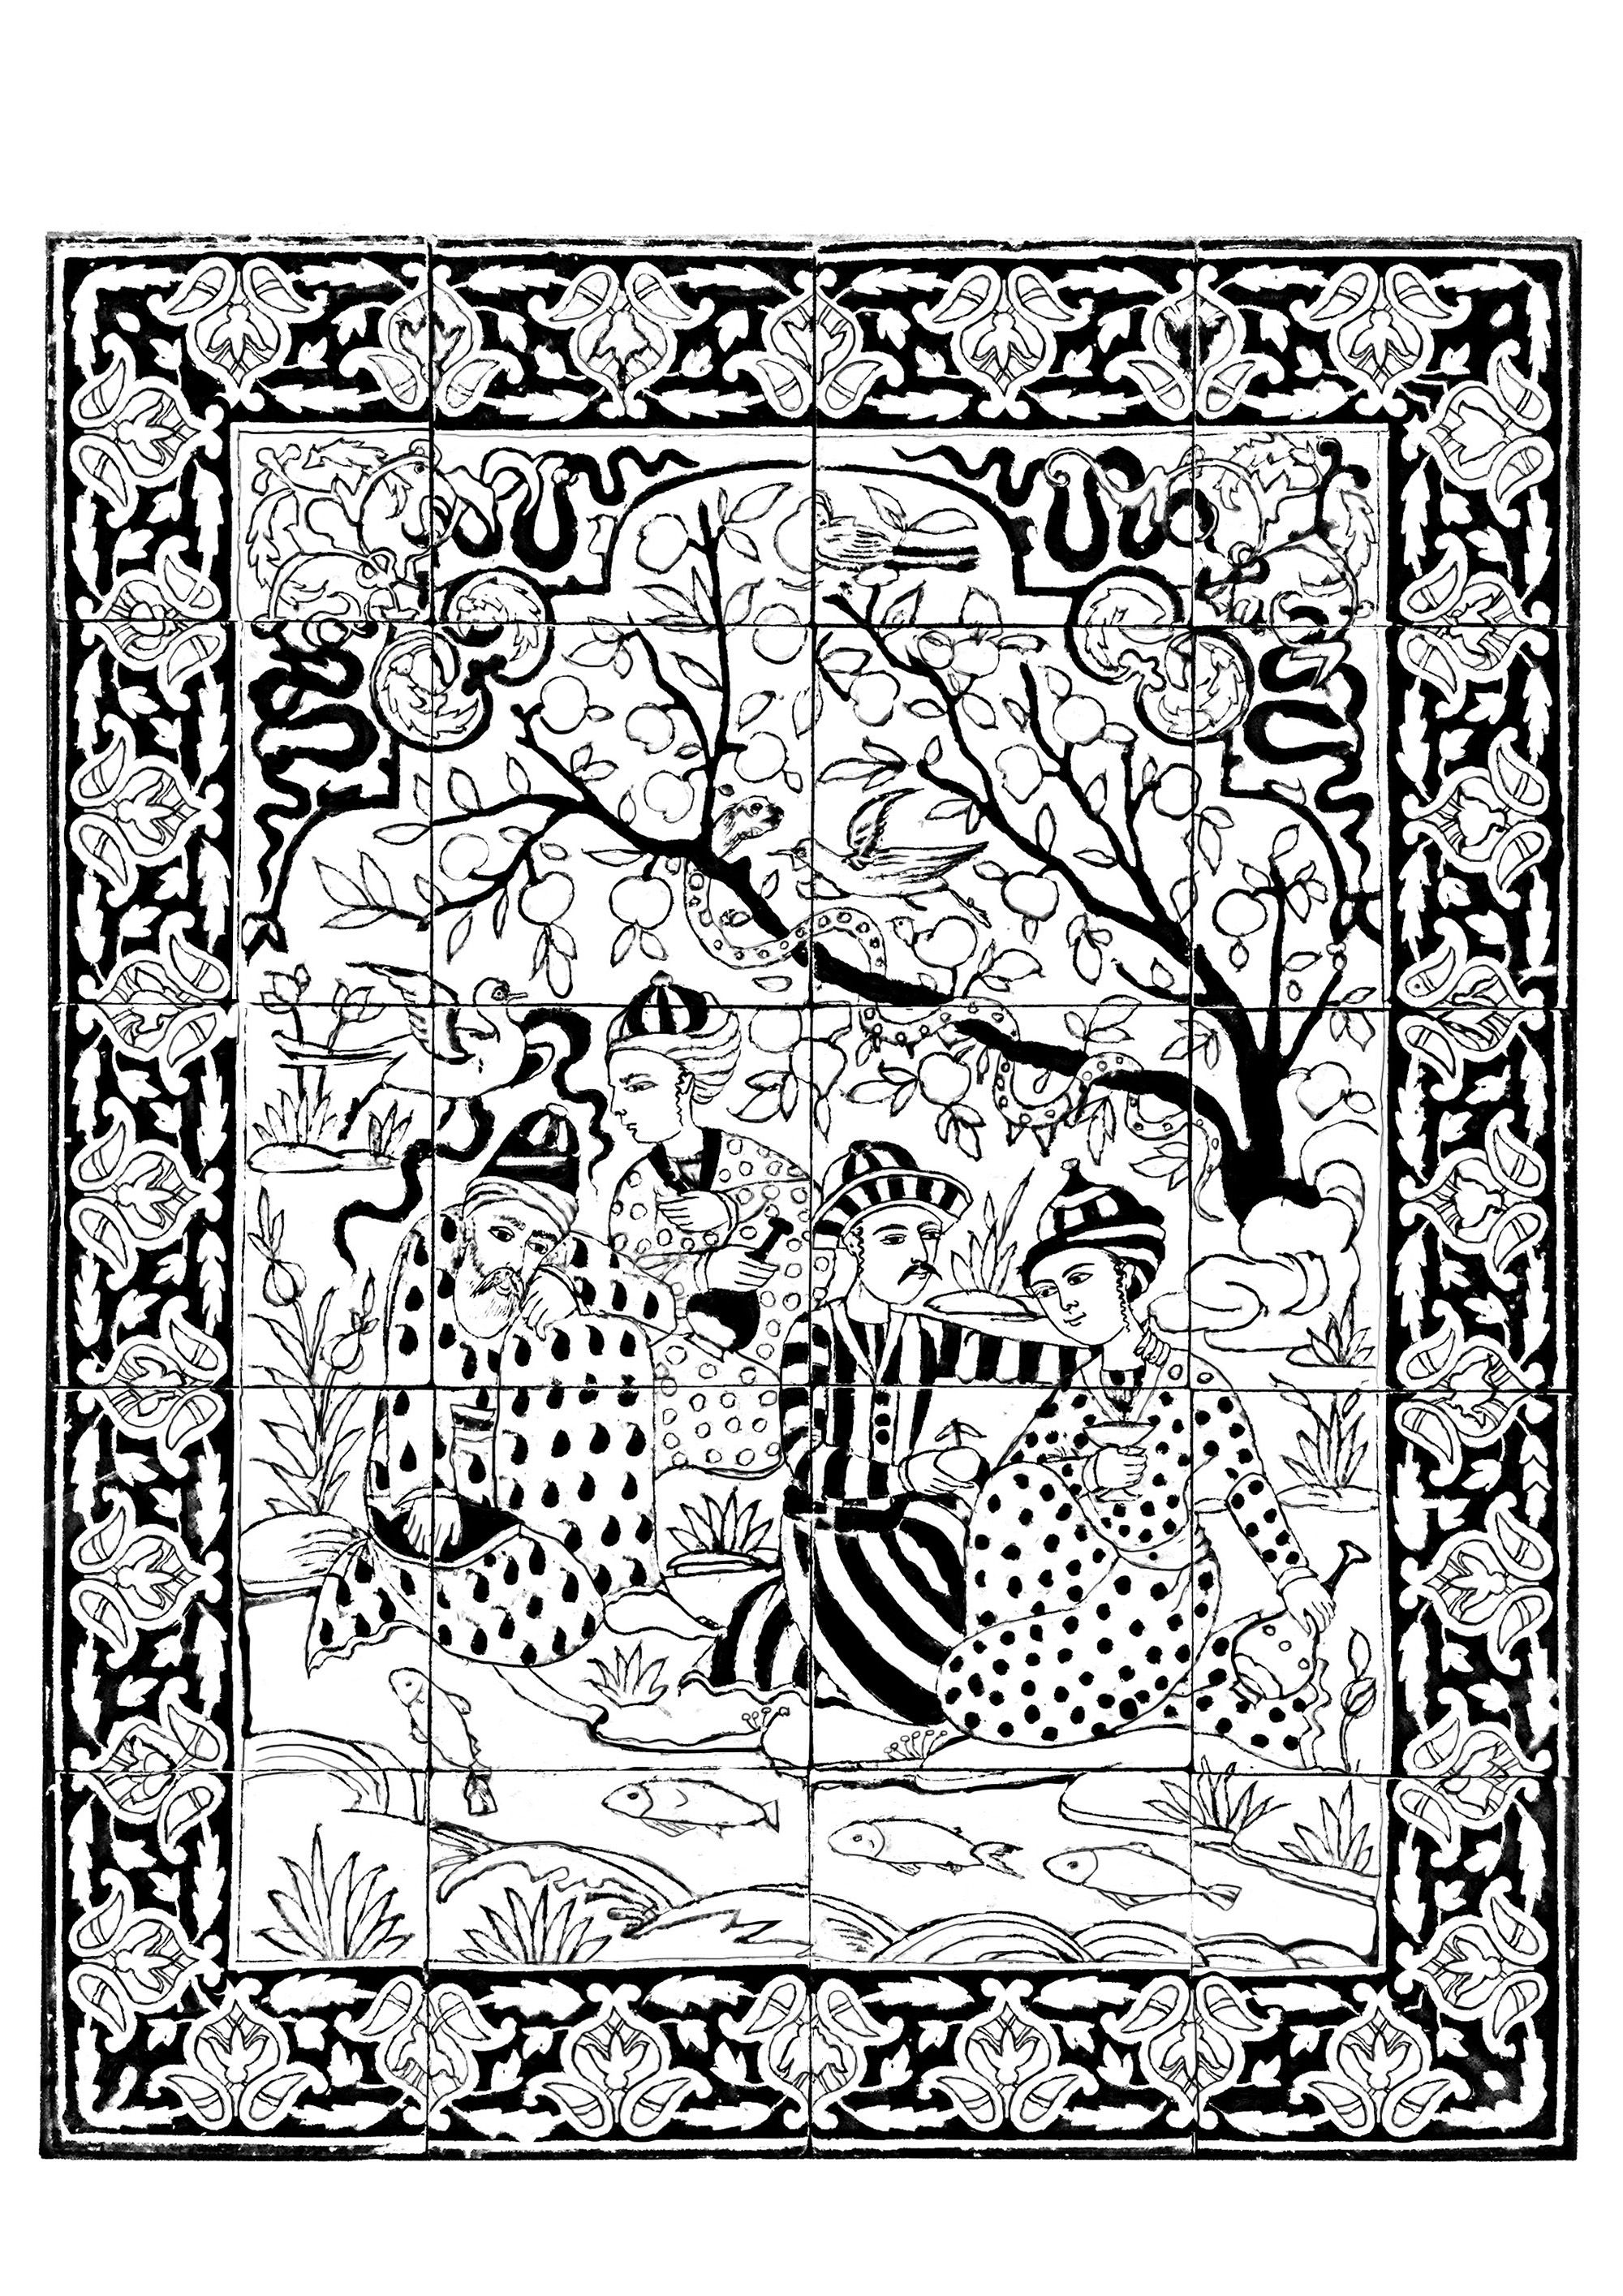 In This Gallery You Will Find Coloring Pages Inspired By